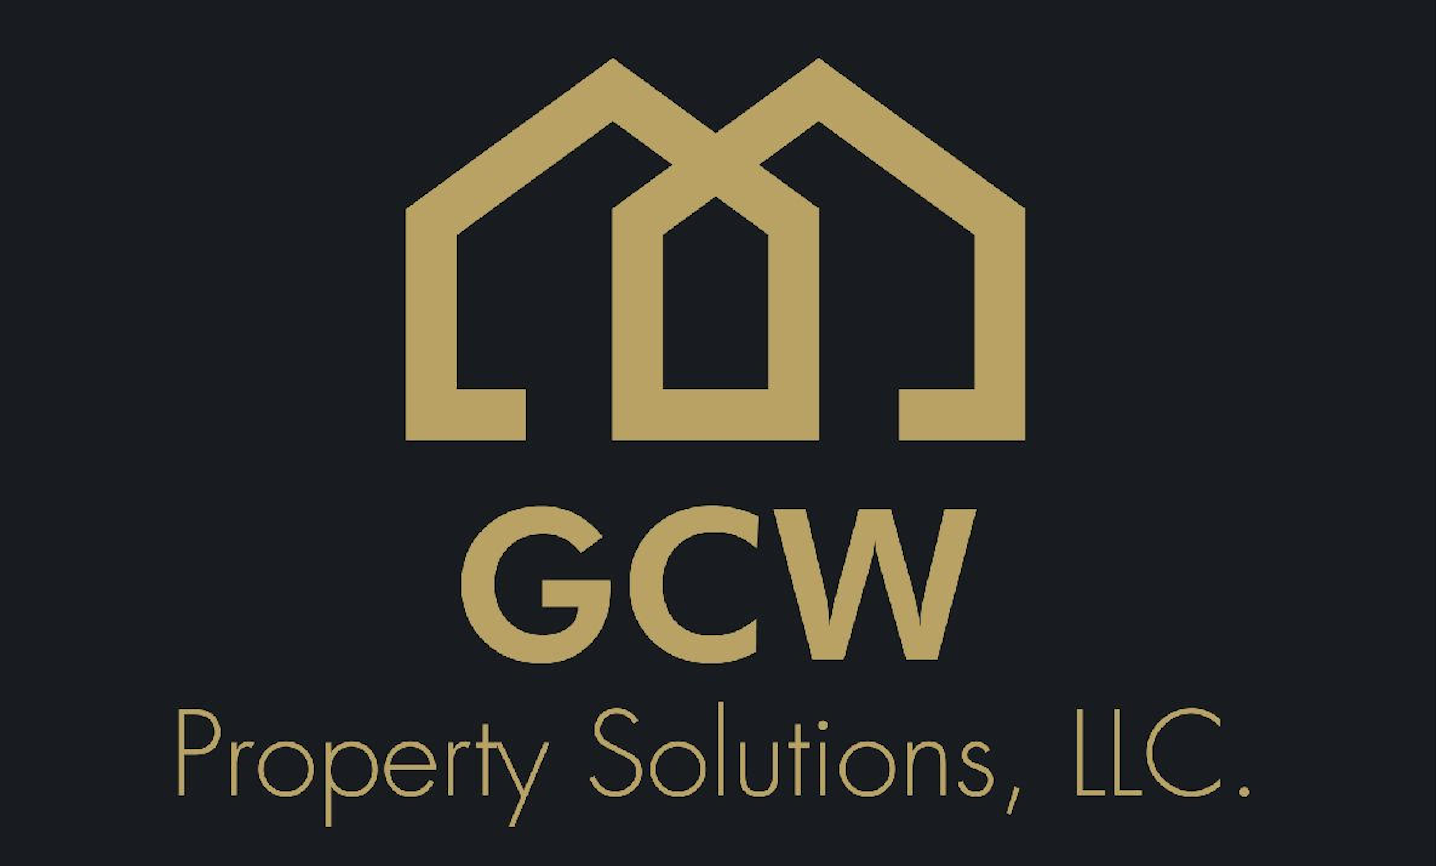 GCW Property Solutions, LLC